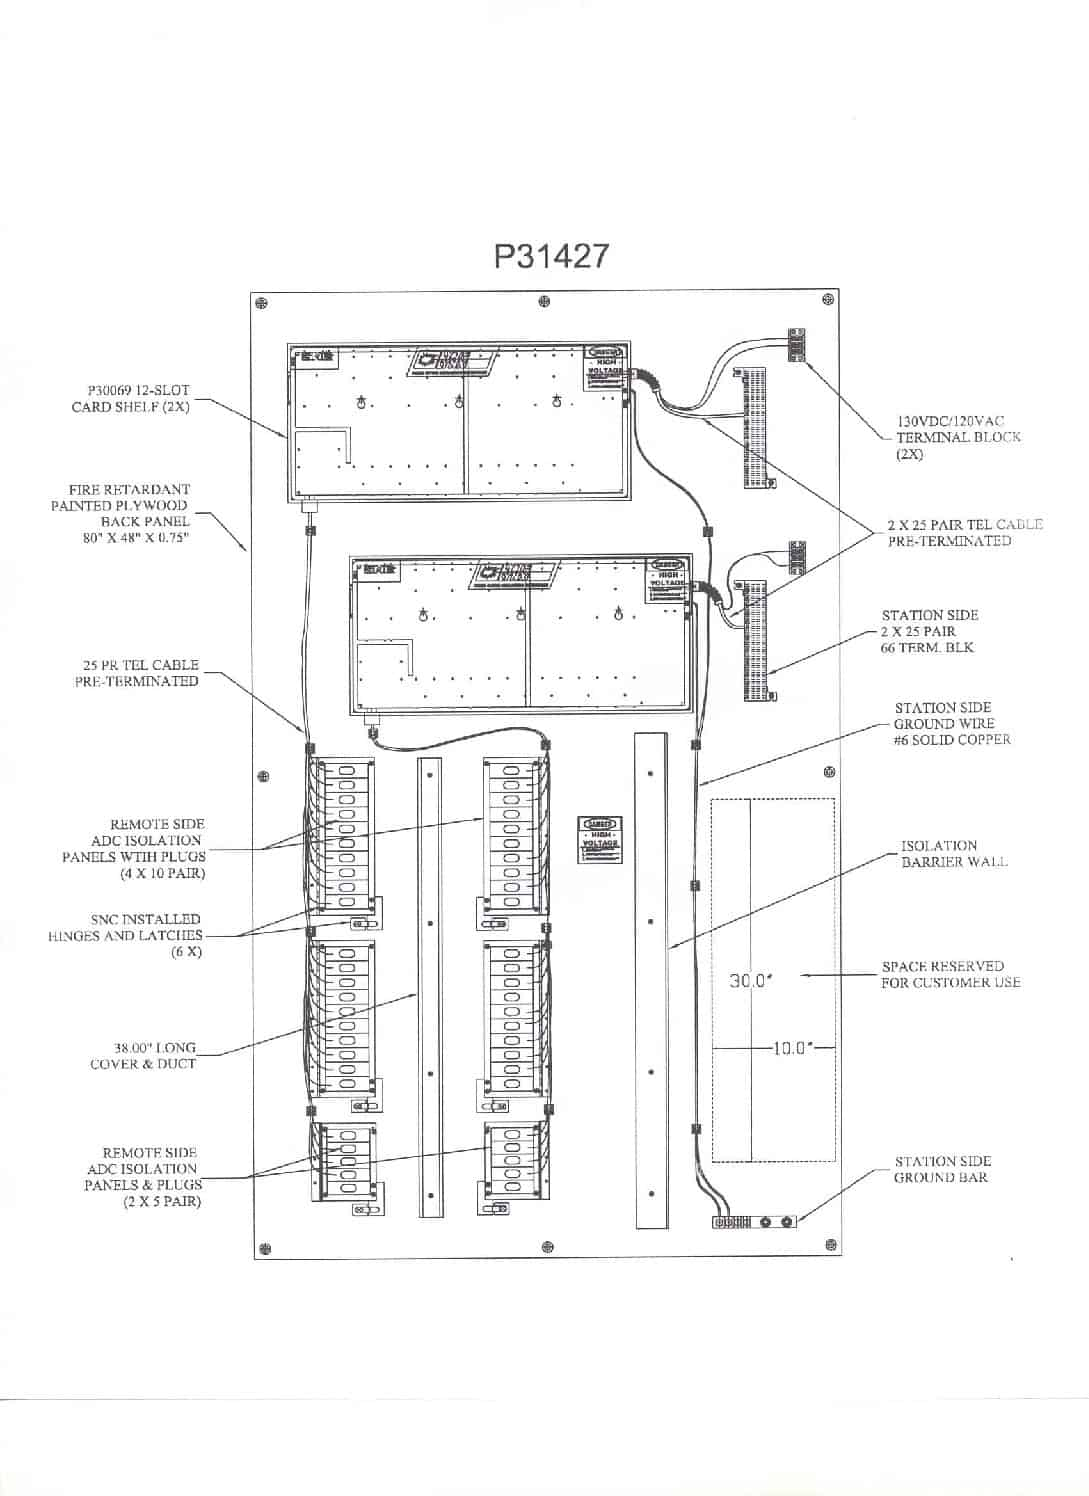 P31427 Turnkey Protection Packages – 12 slot PDF thumbnail